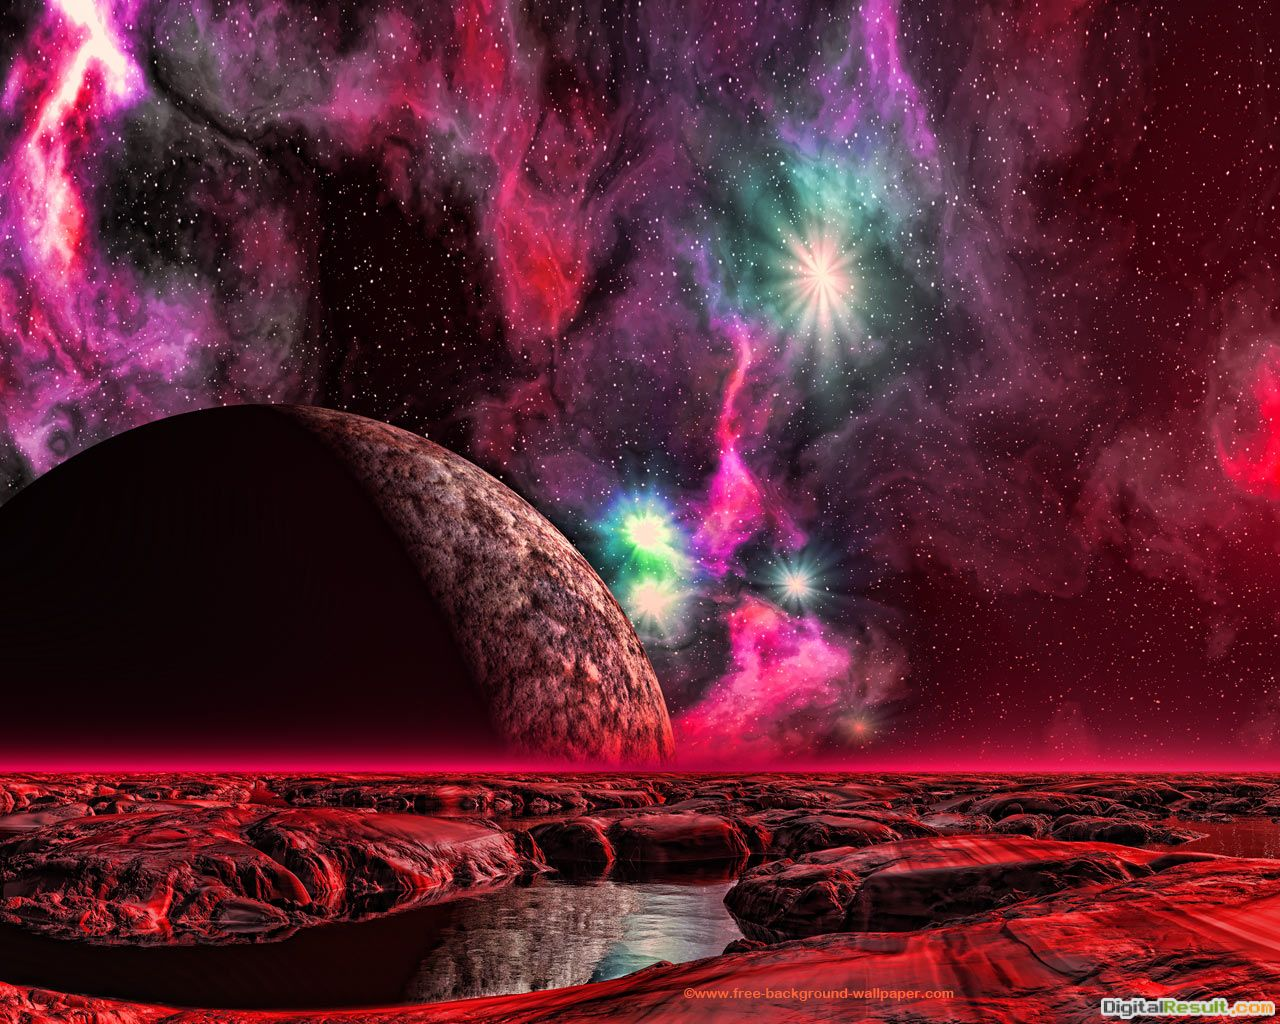 Moon Rise Over Red PlanetSpace Background Wallpaper1280x1024 795